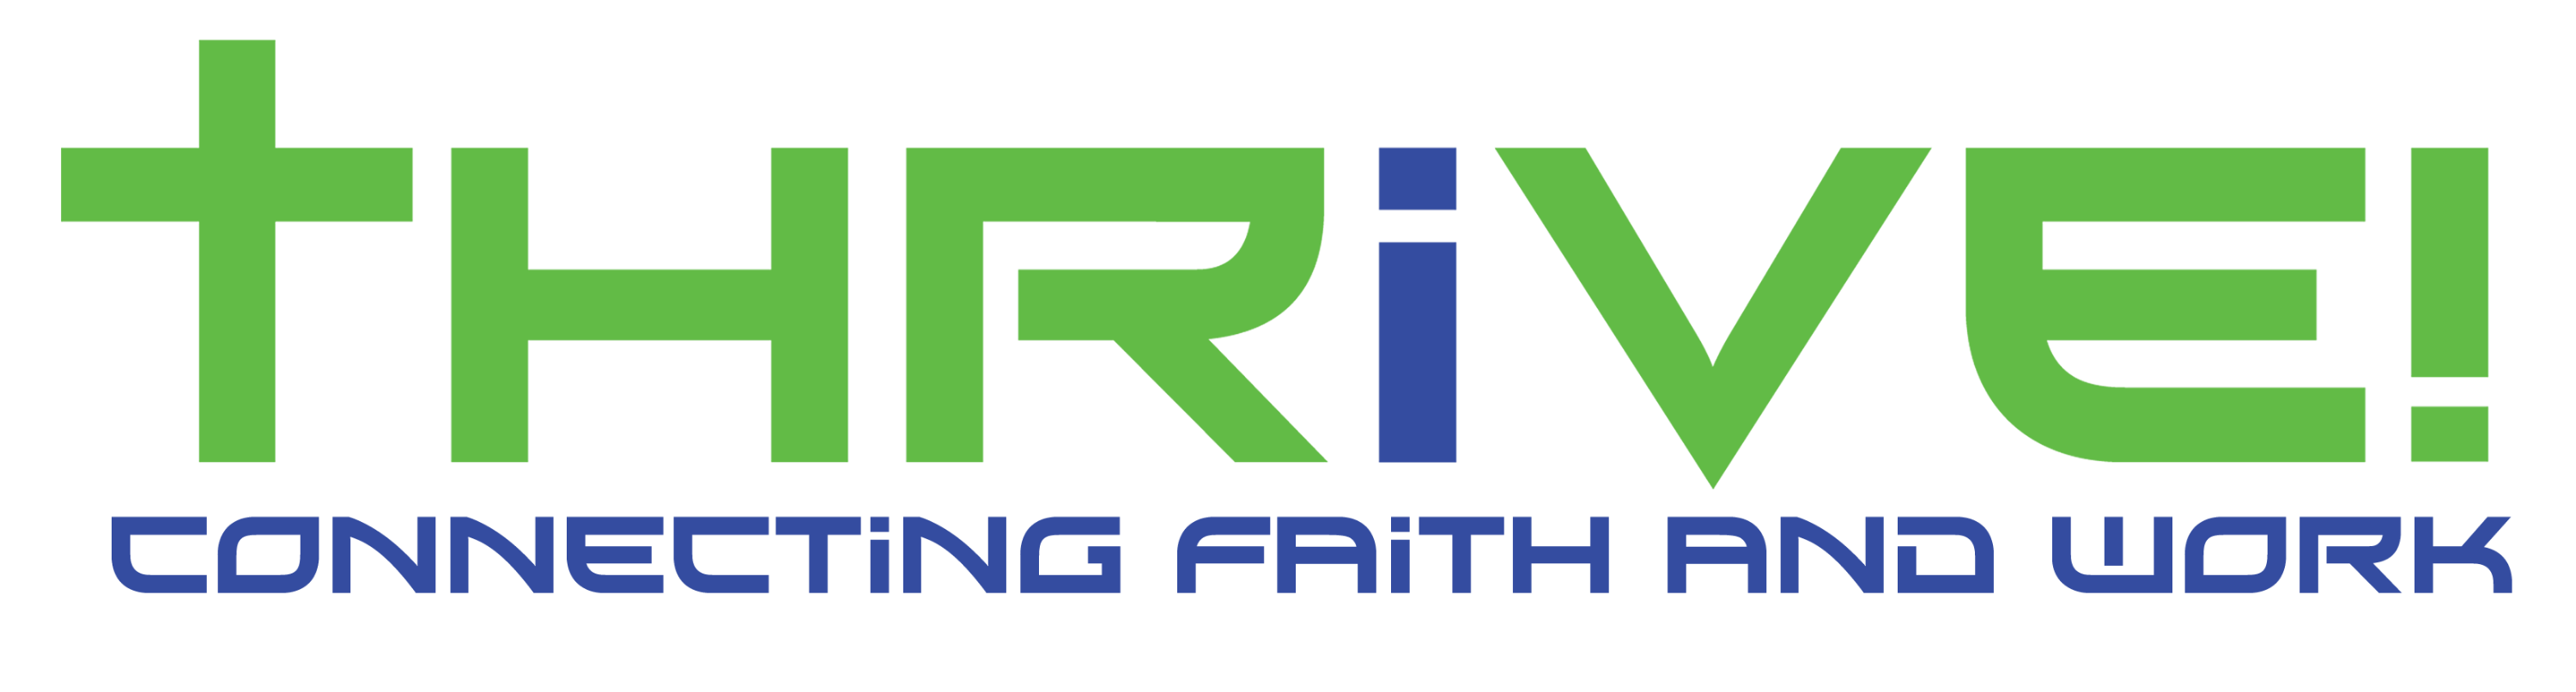 Thrive! Eden Prairie